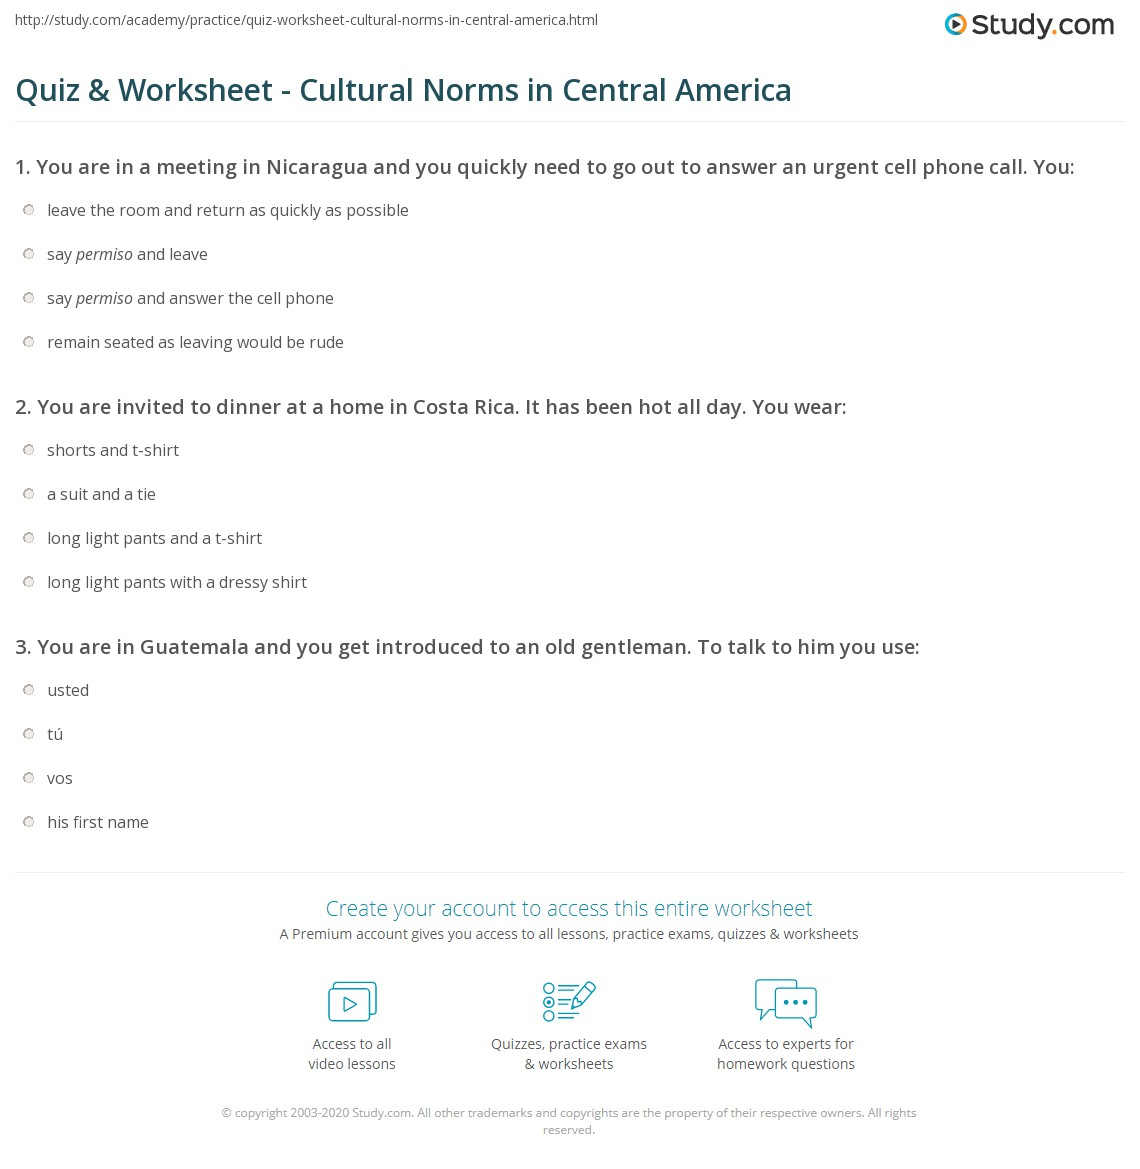 Quiz & Worksheet - Cultural Norms in Central America | Study com